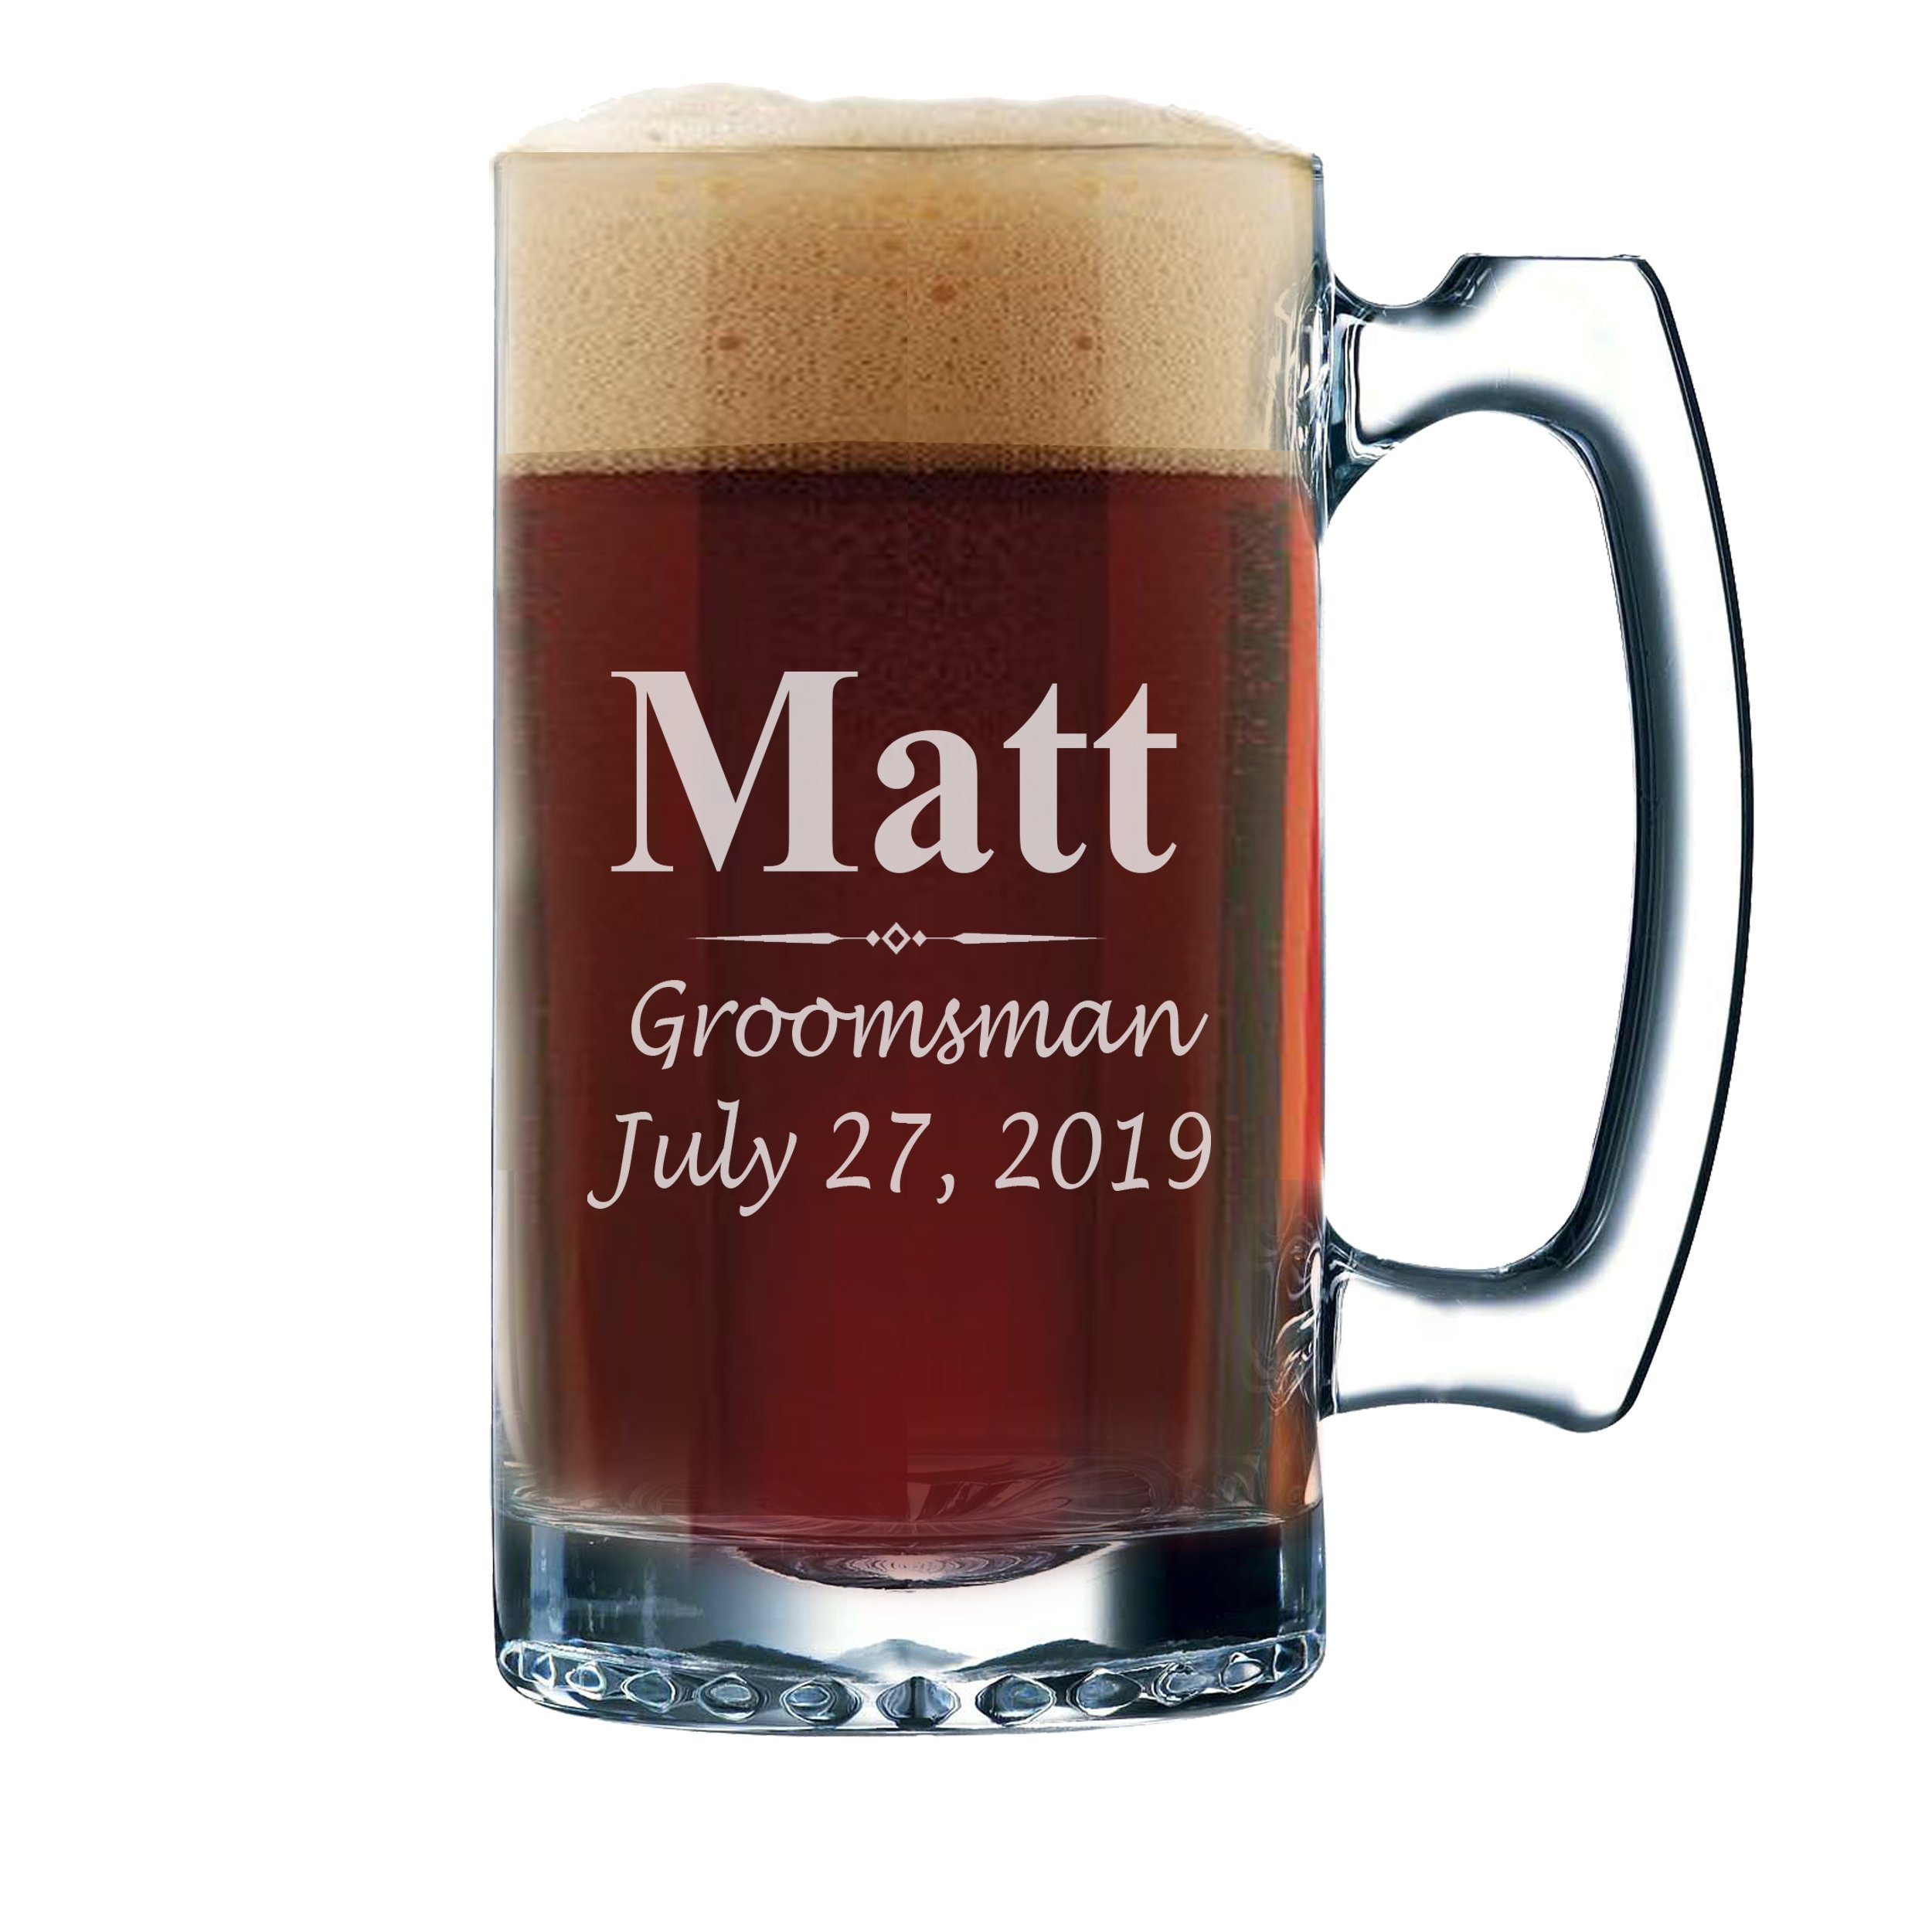 Set of 3, Set of 5 Set of 7 and more Personalized Groomsmen Beer Glasses - Custom Engraved Groom, Best Man Gift Mugs - 3 Lines Style 12 oz (8) by My Personal Memories (Image #2)